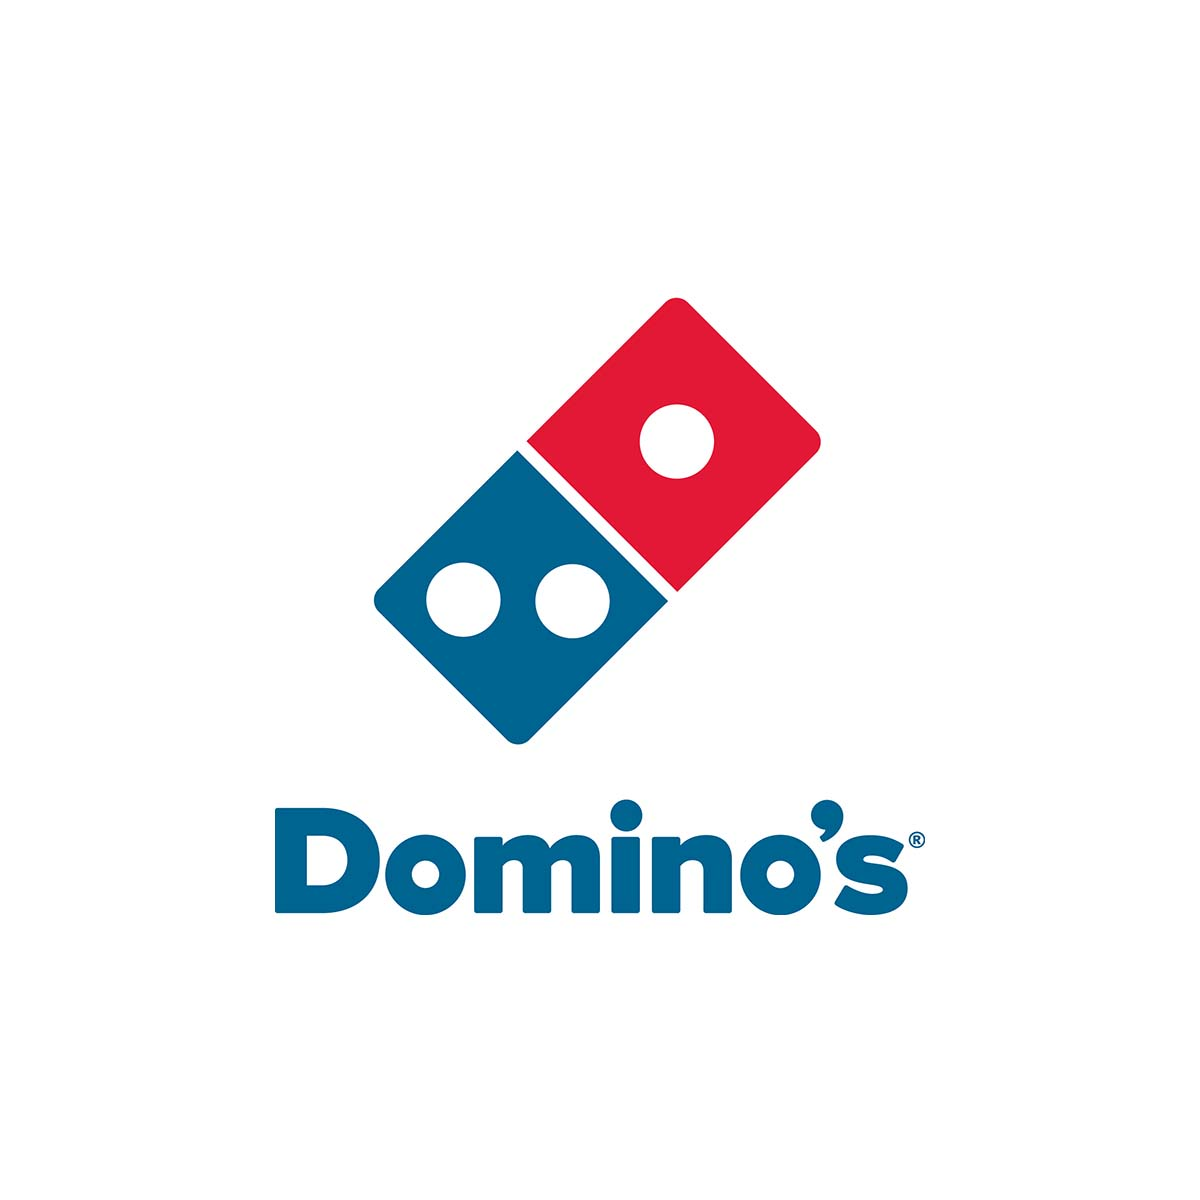 dominos profile history and background